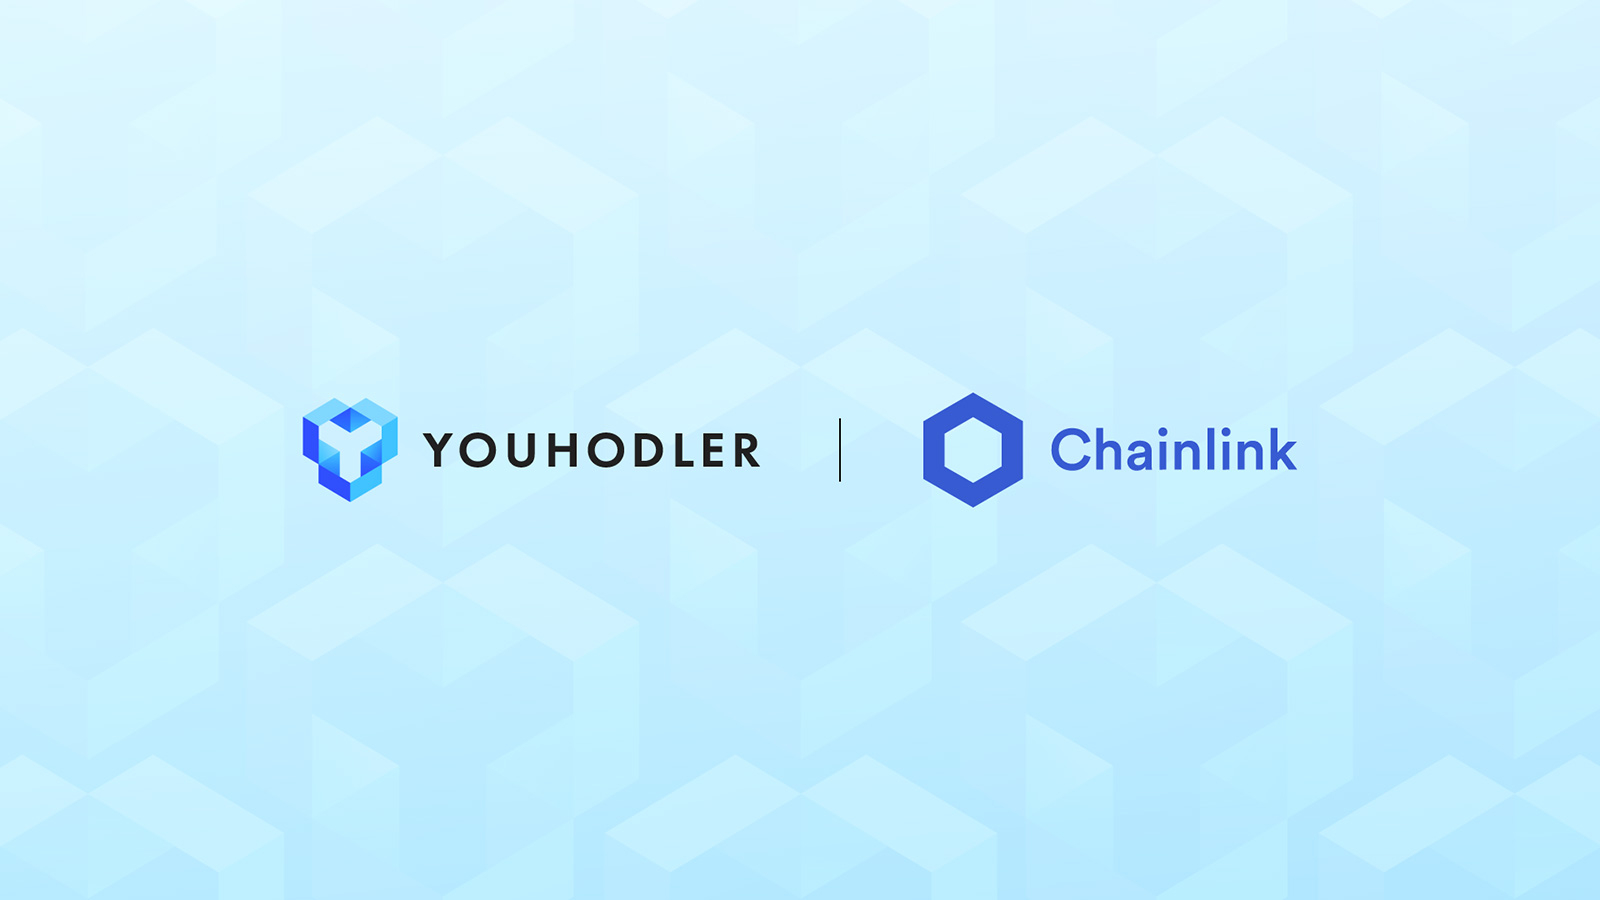 youhodler and chainlink logos